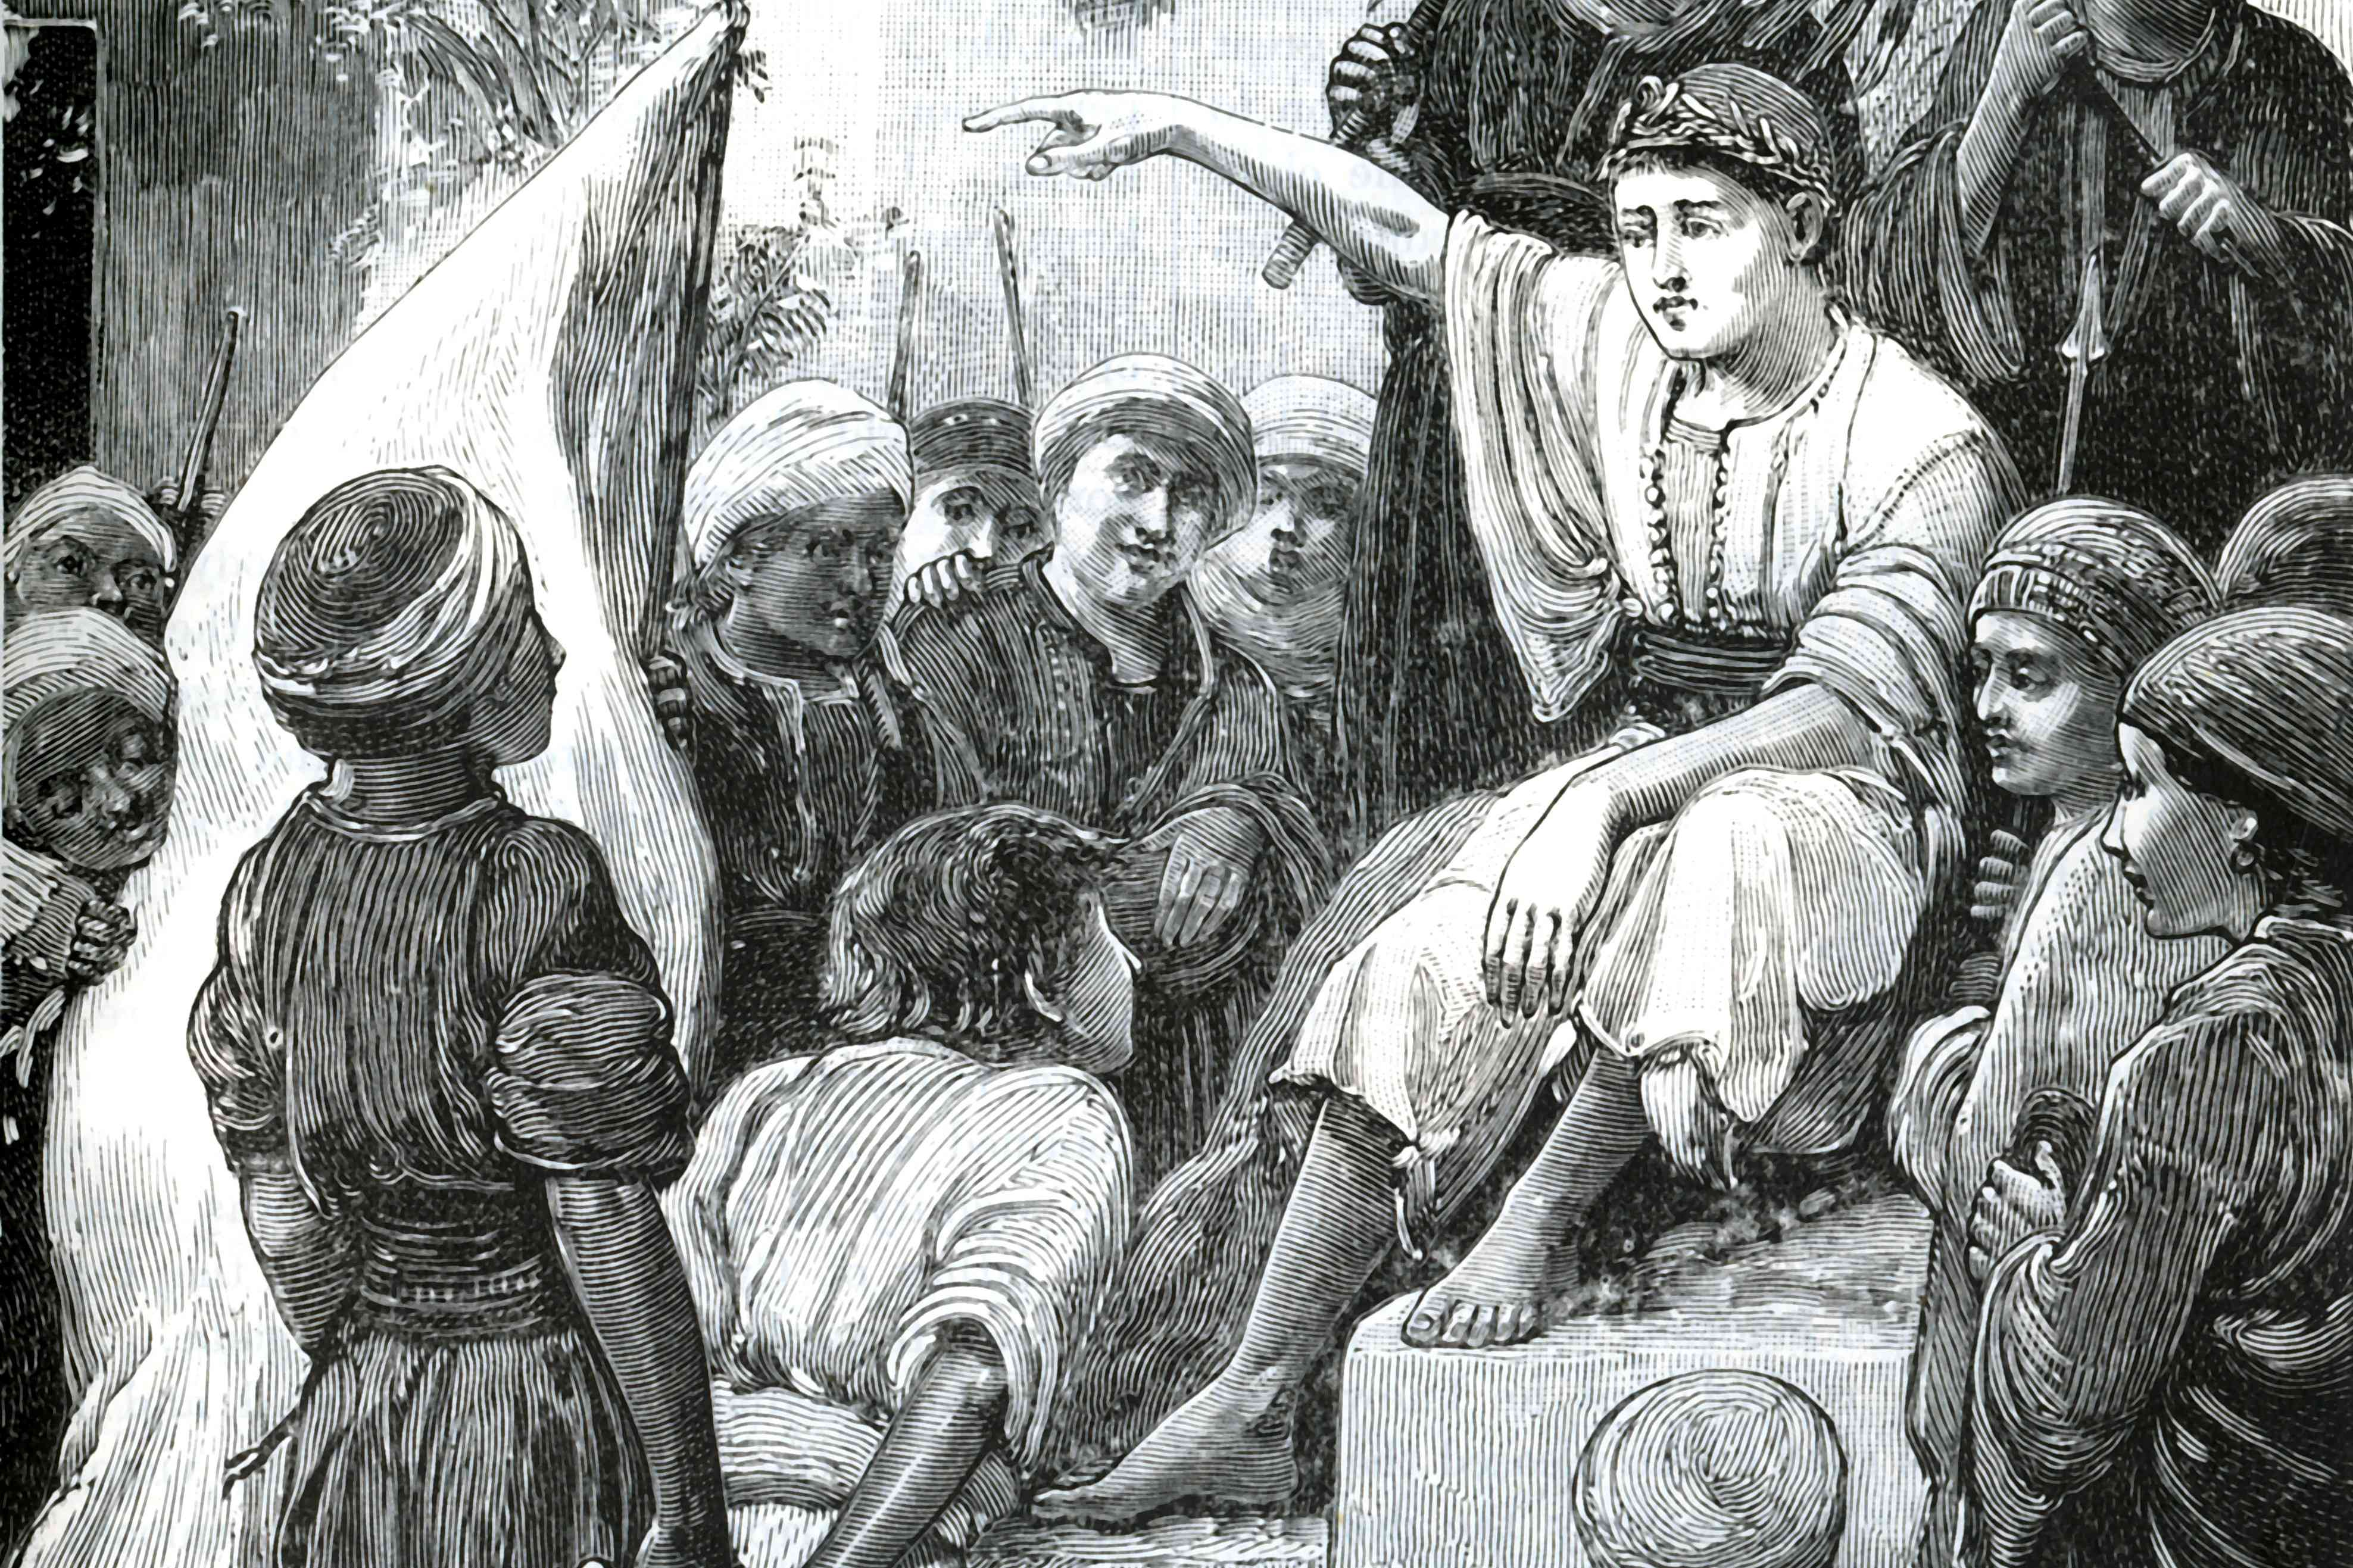 Young King Cyrus wearing a laurel crown and dispensing orders while pointing